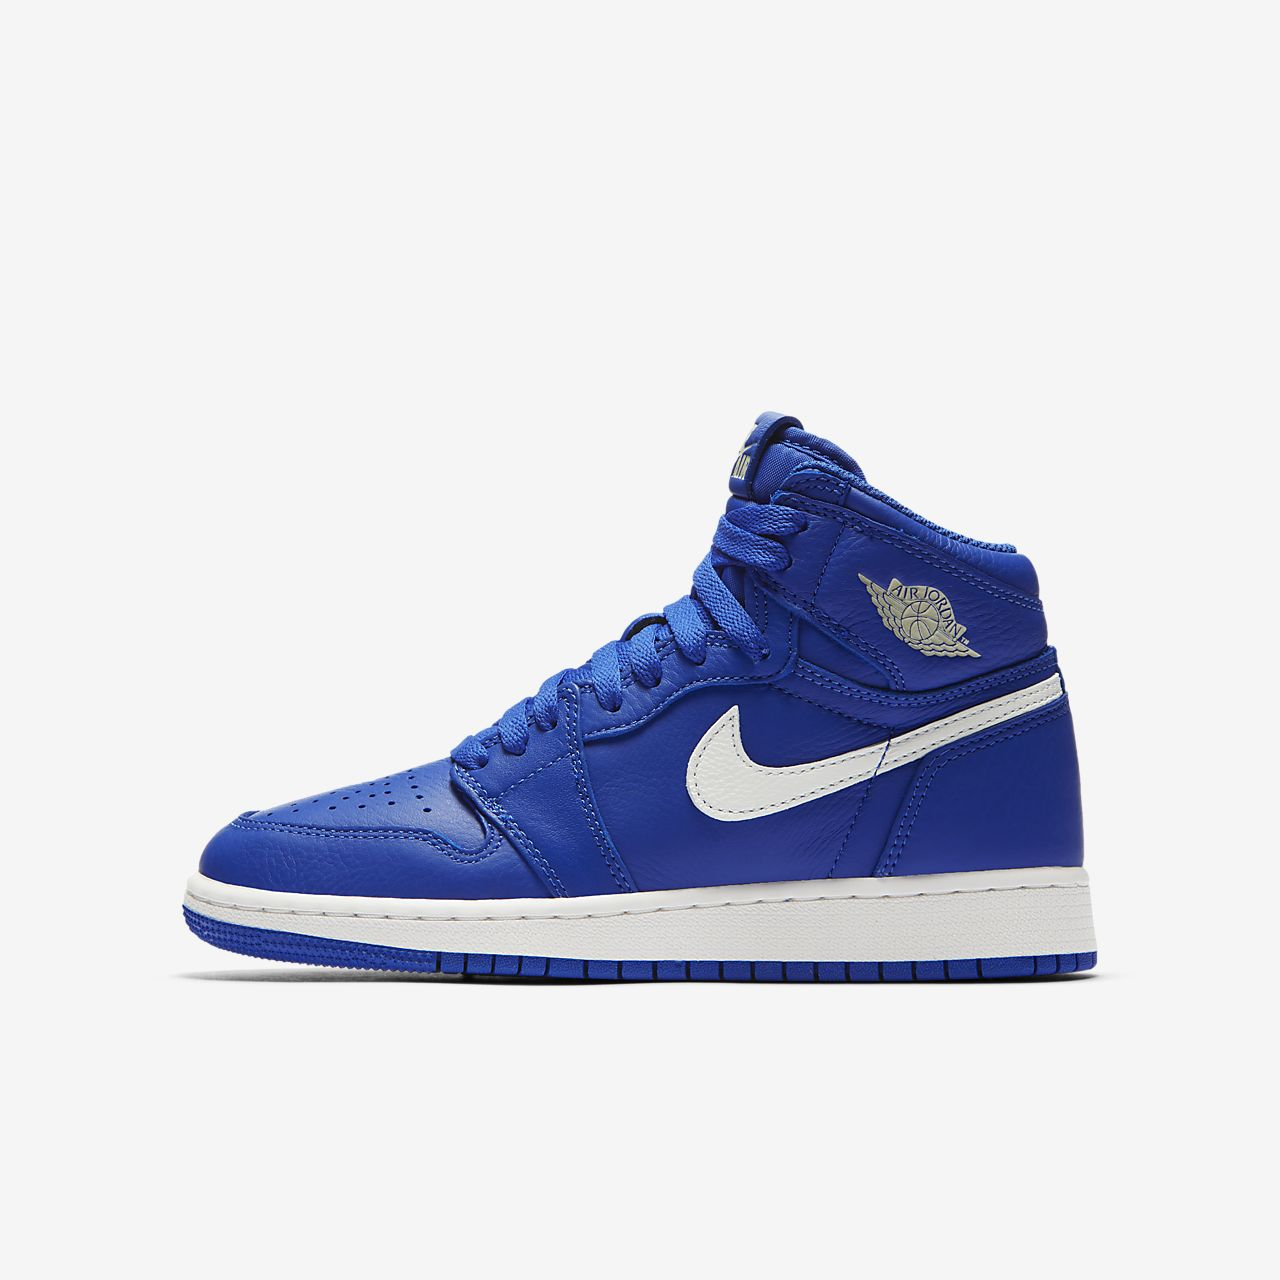 new concept e9fe8 c8a04 Air Jordan 1 Retro High OG